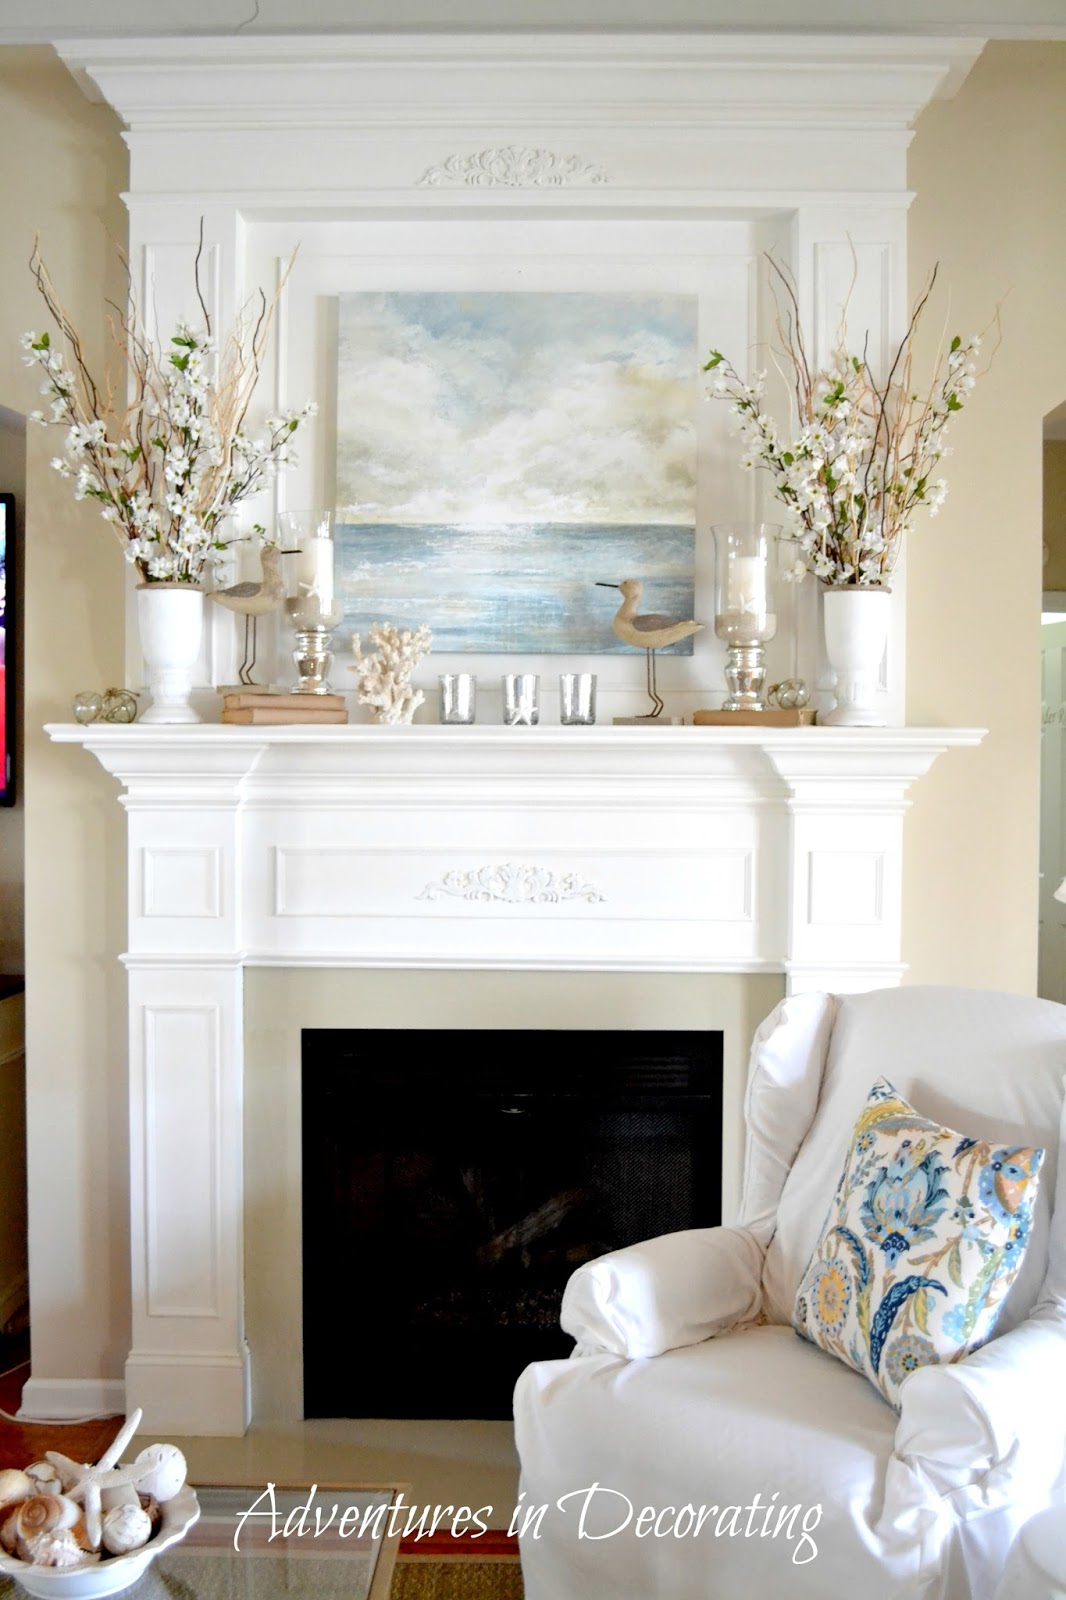 Adventures in decorating former house tour for How to design a fireplace mantel